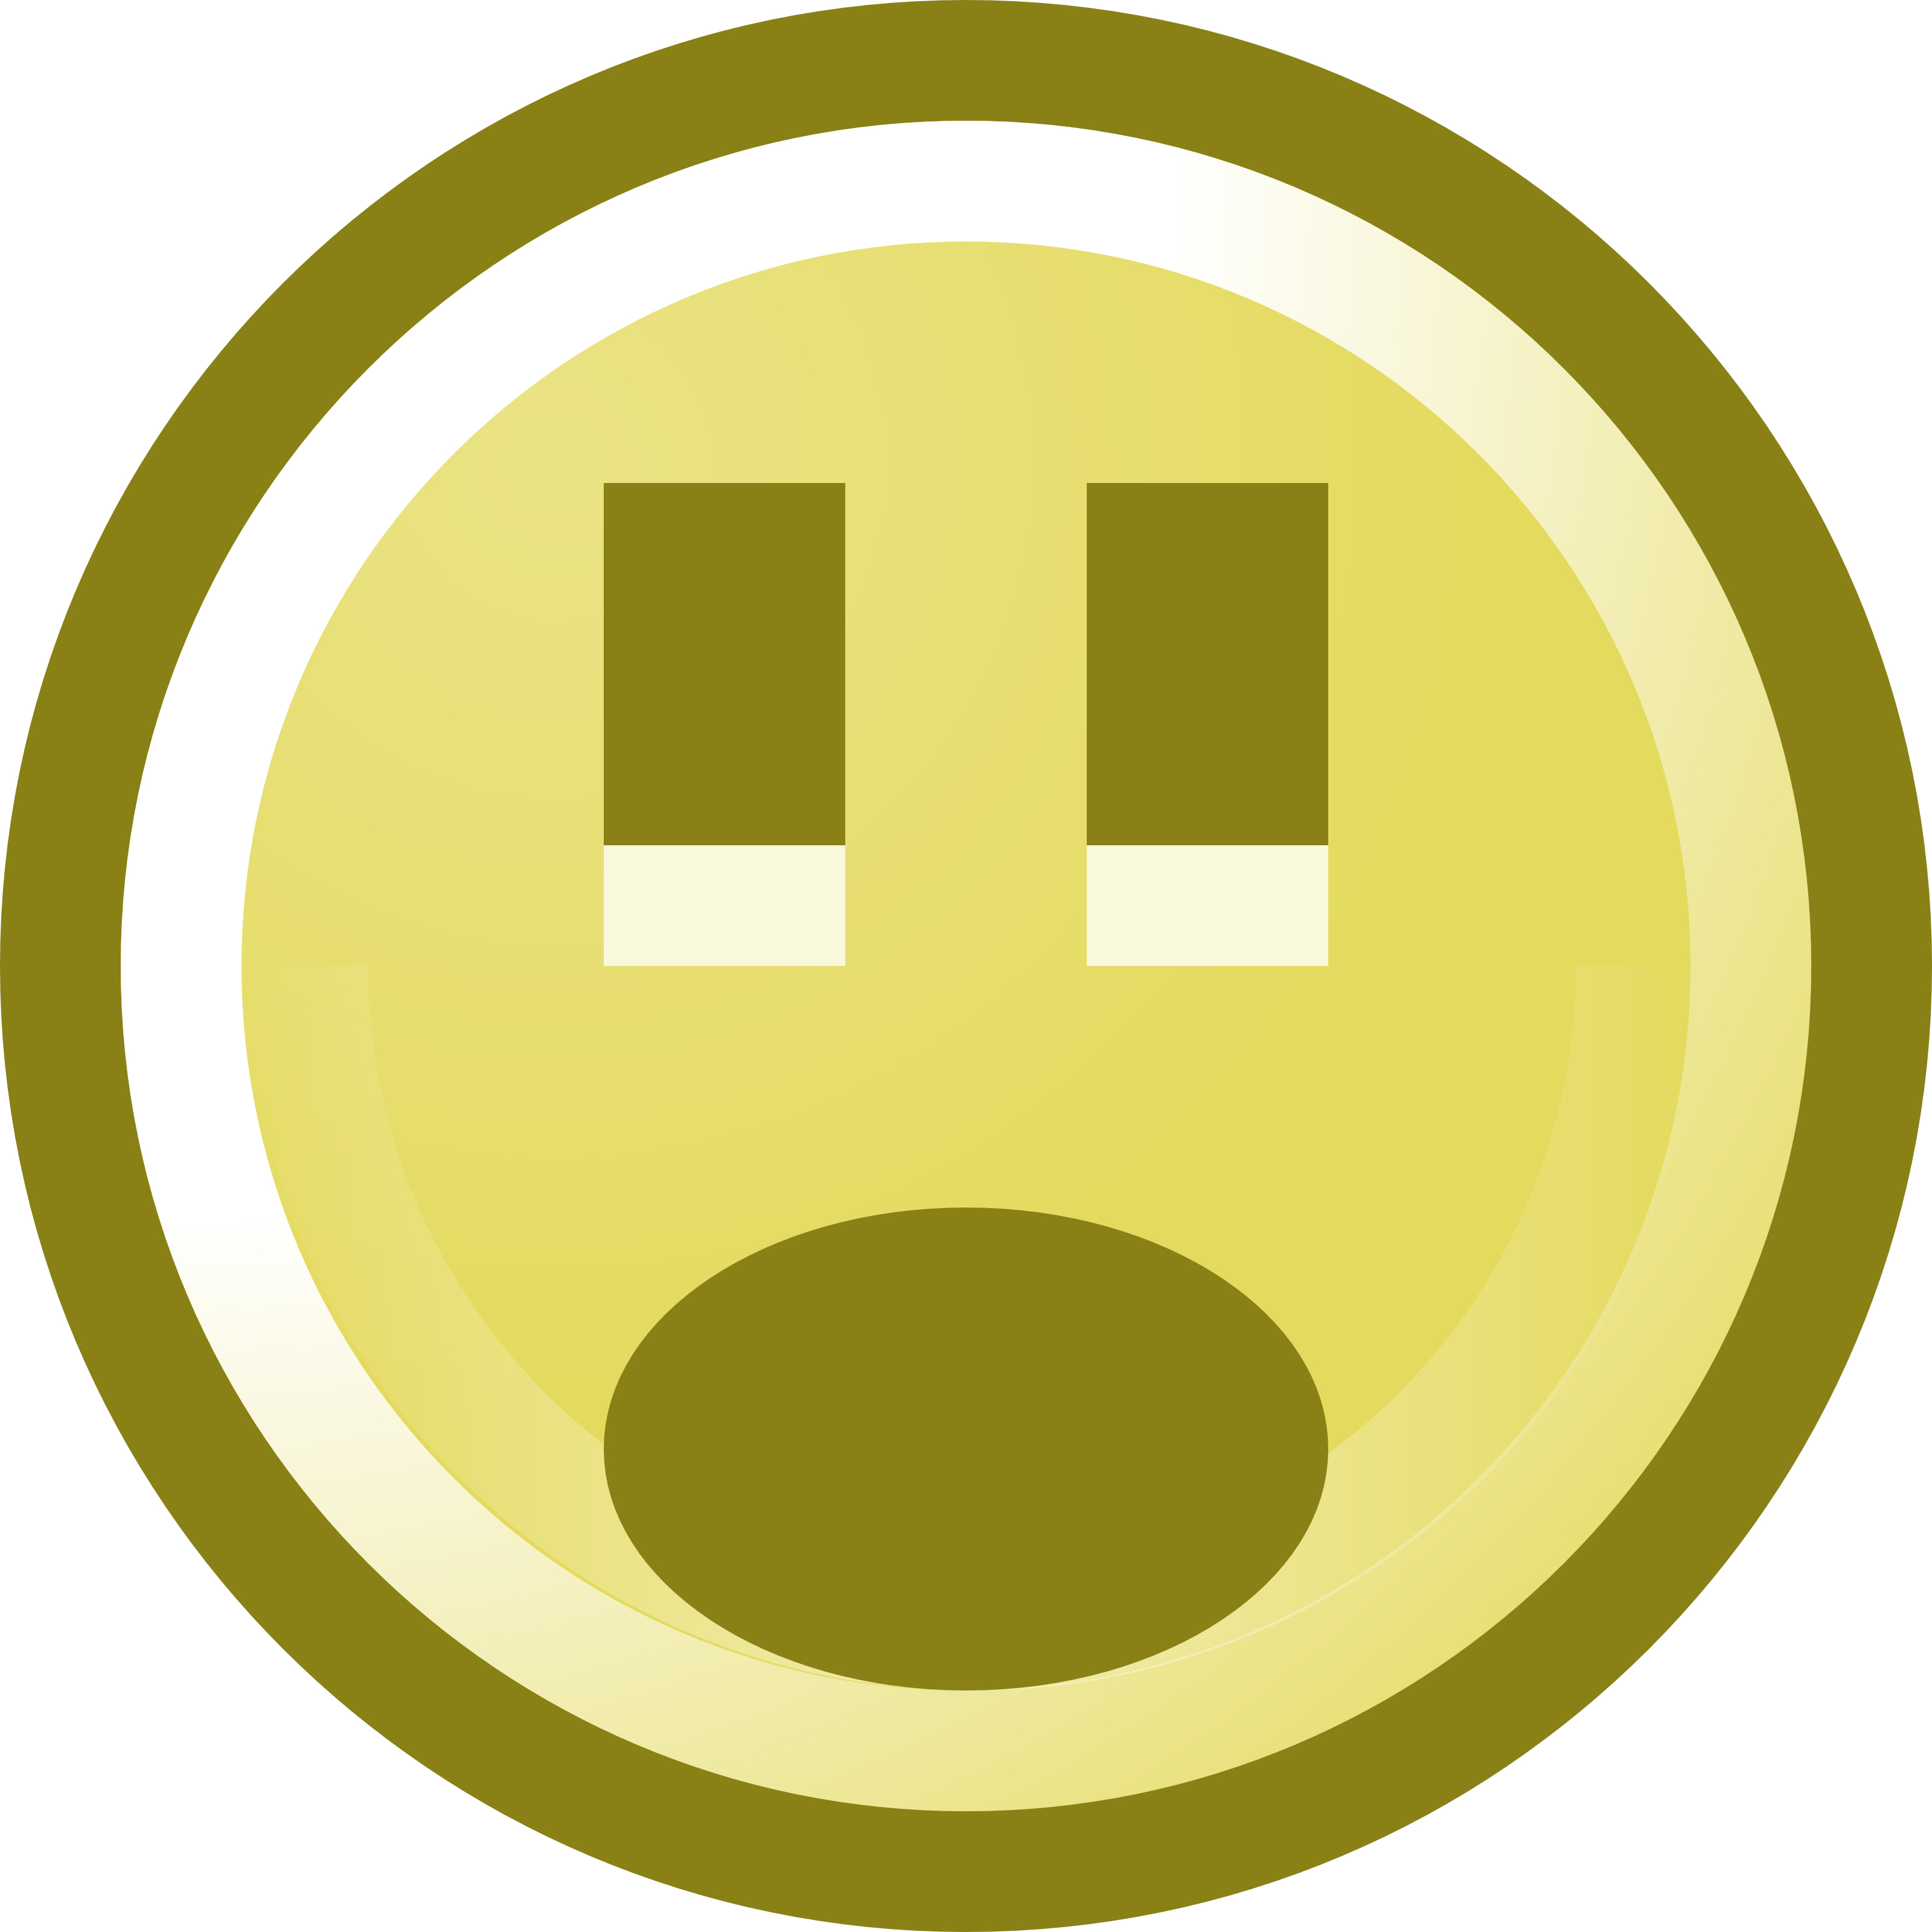 3200x3200 Shocked Smiley Face Clip Art Illustration